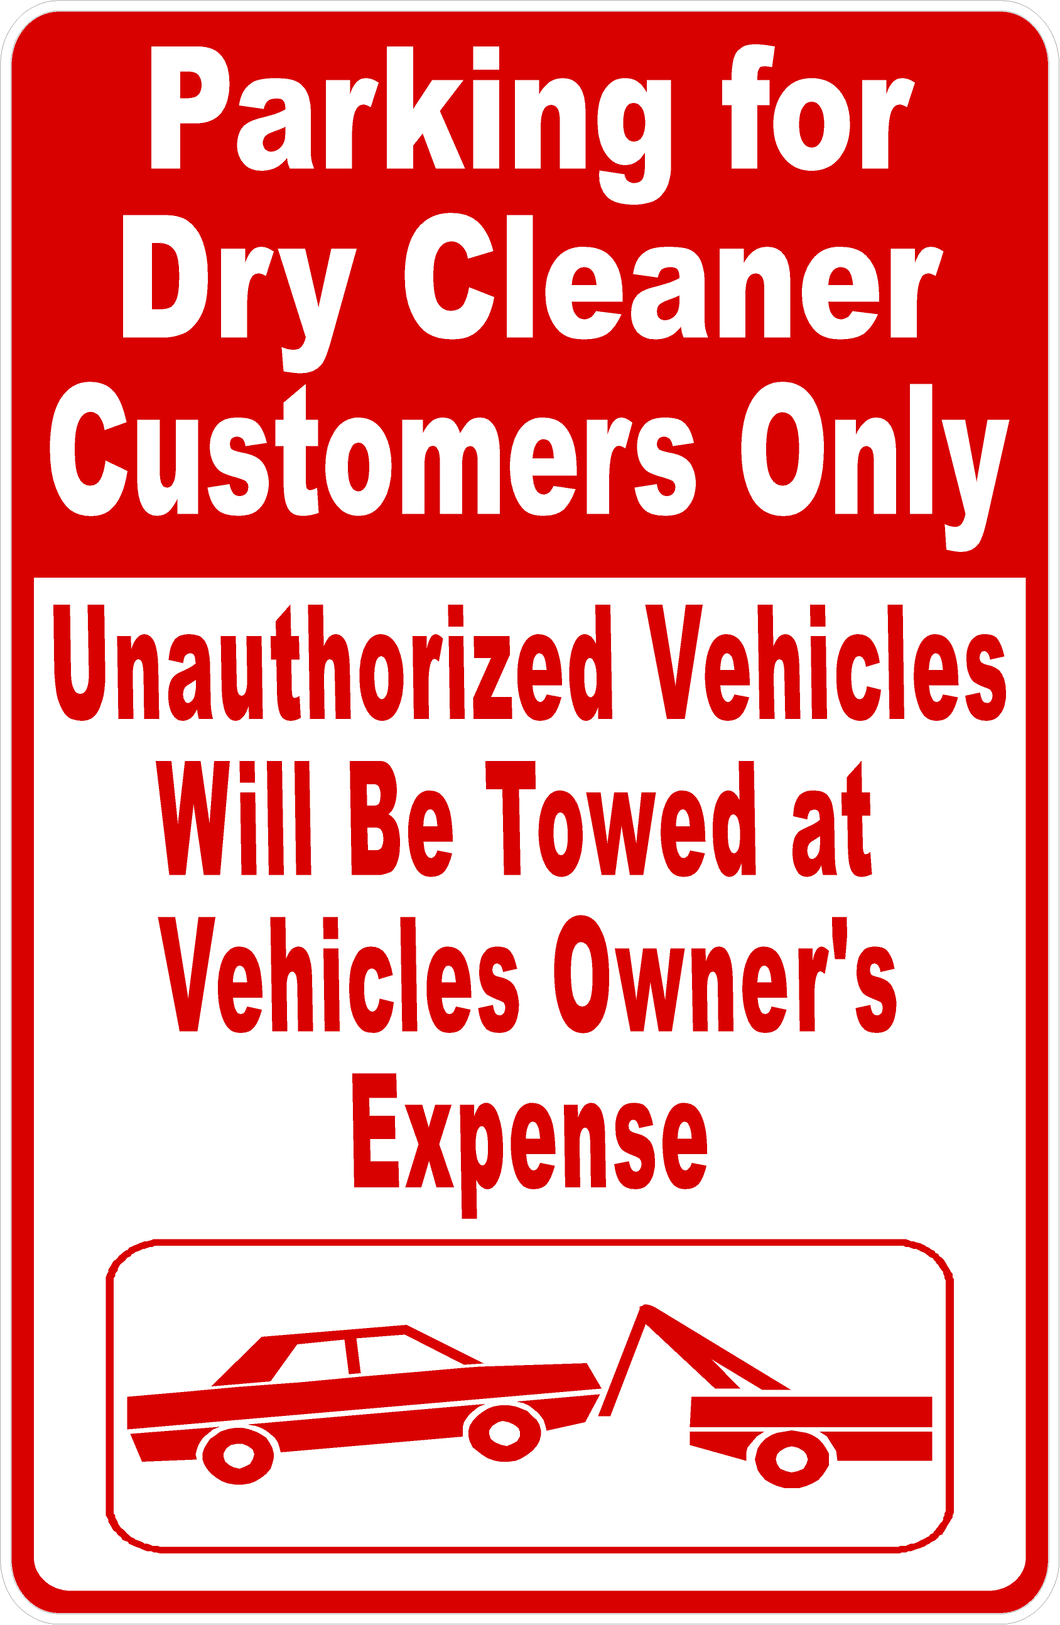 Dry Cleaner Customer Parking Sign